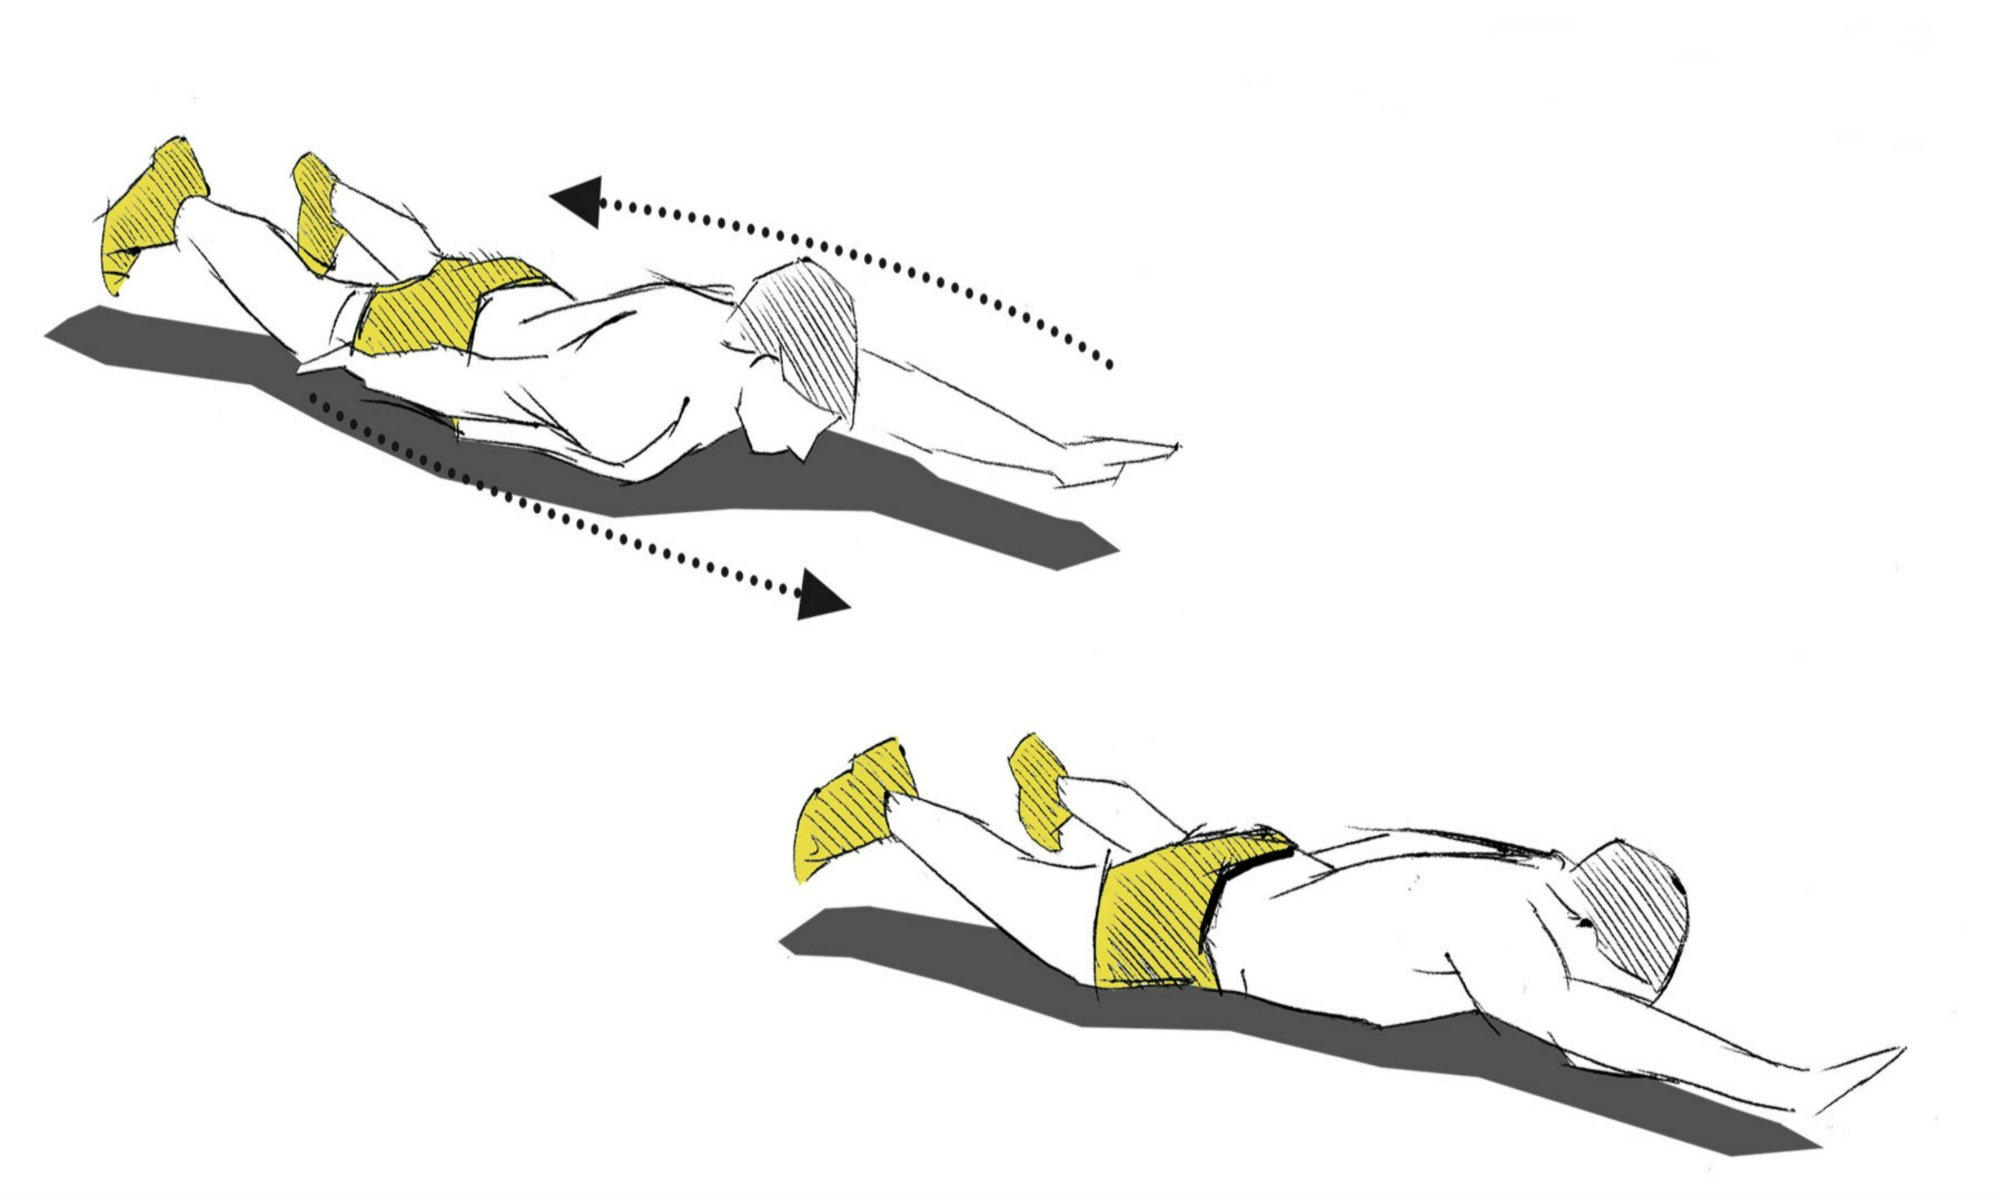 The arm changes exercise.